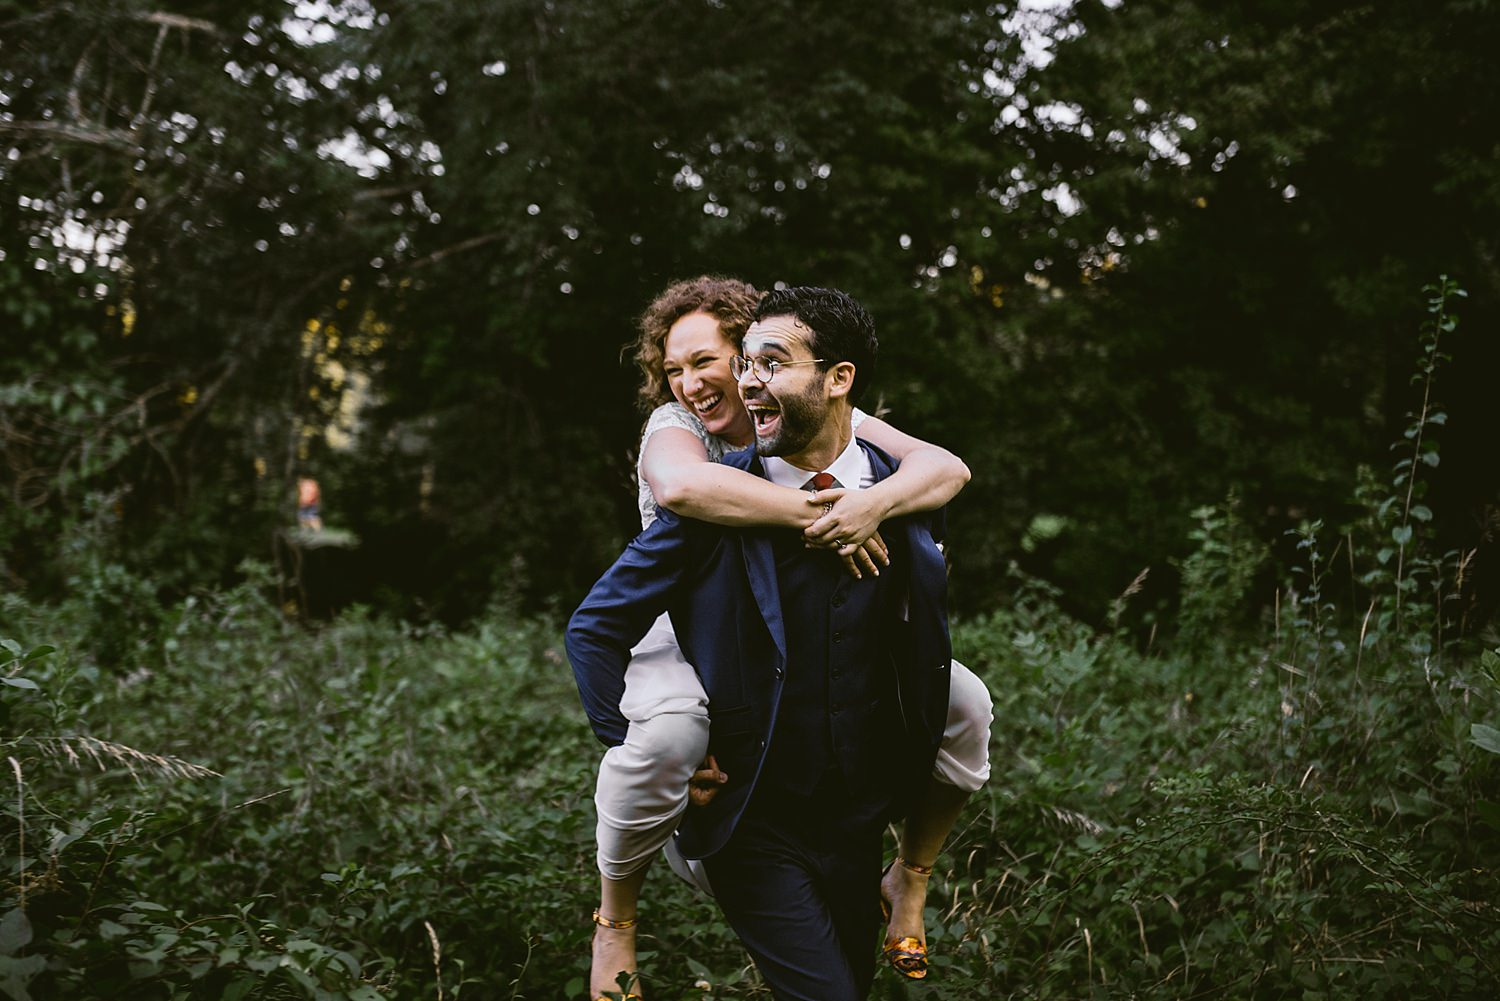 Bride riding piggy back on groom